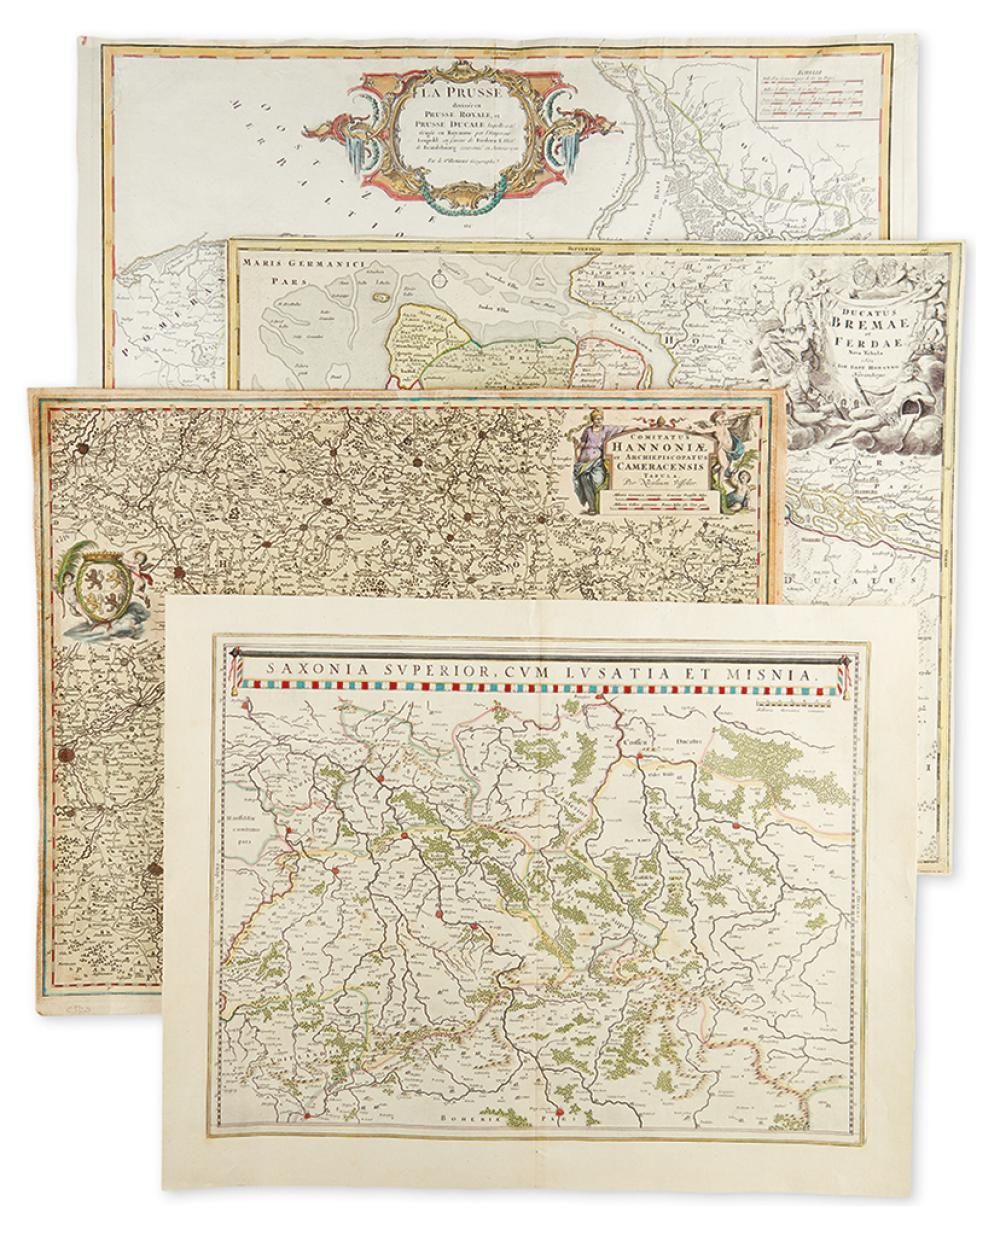 (MISCELLANEOUS MAPS.) Four double-page engraved folio maps.